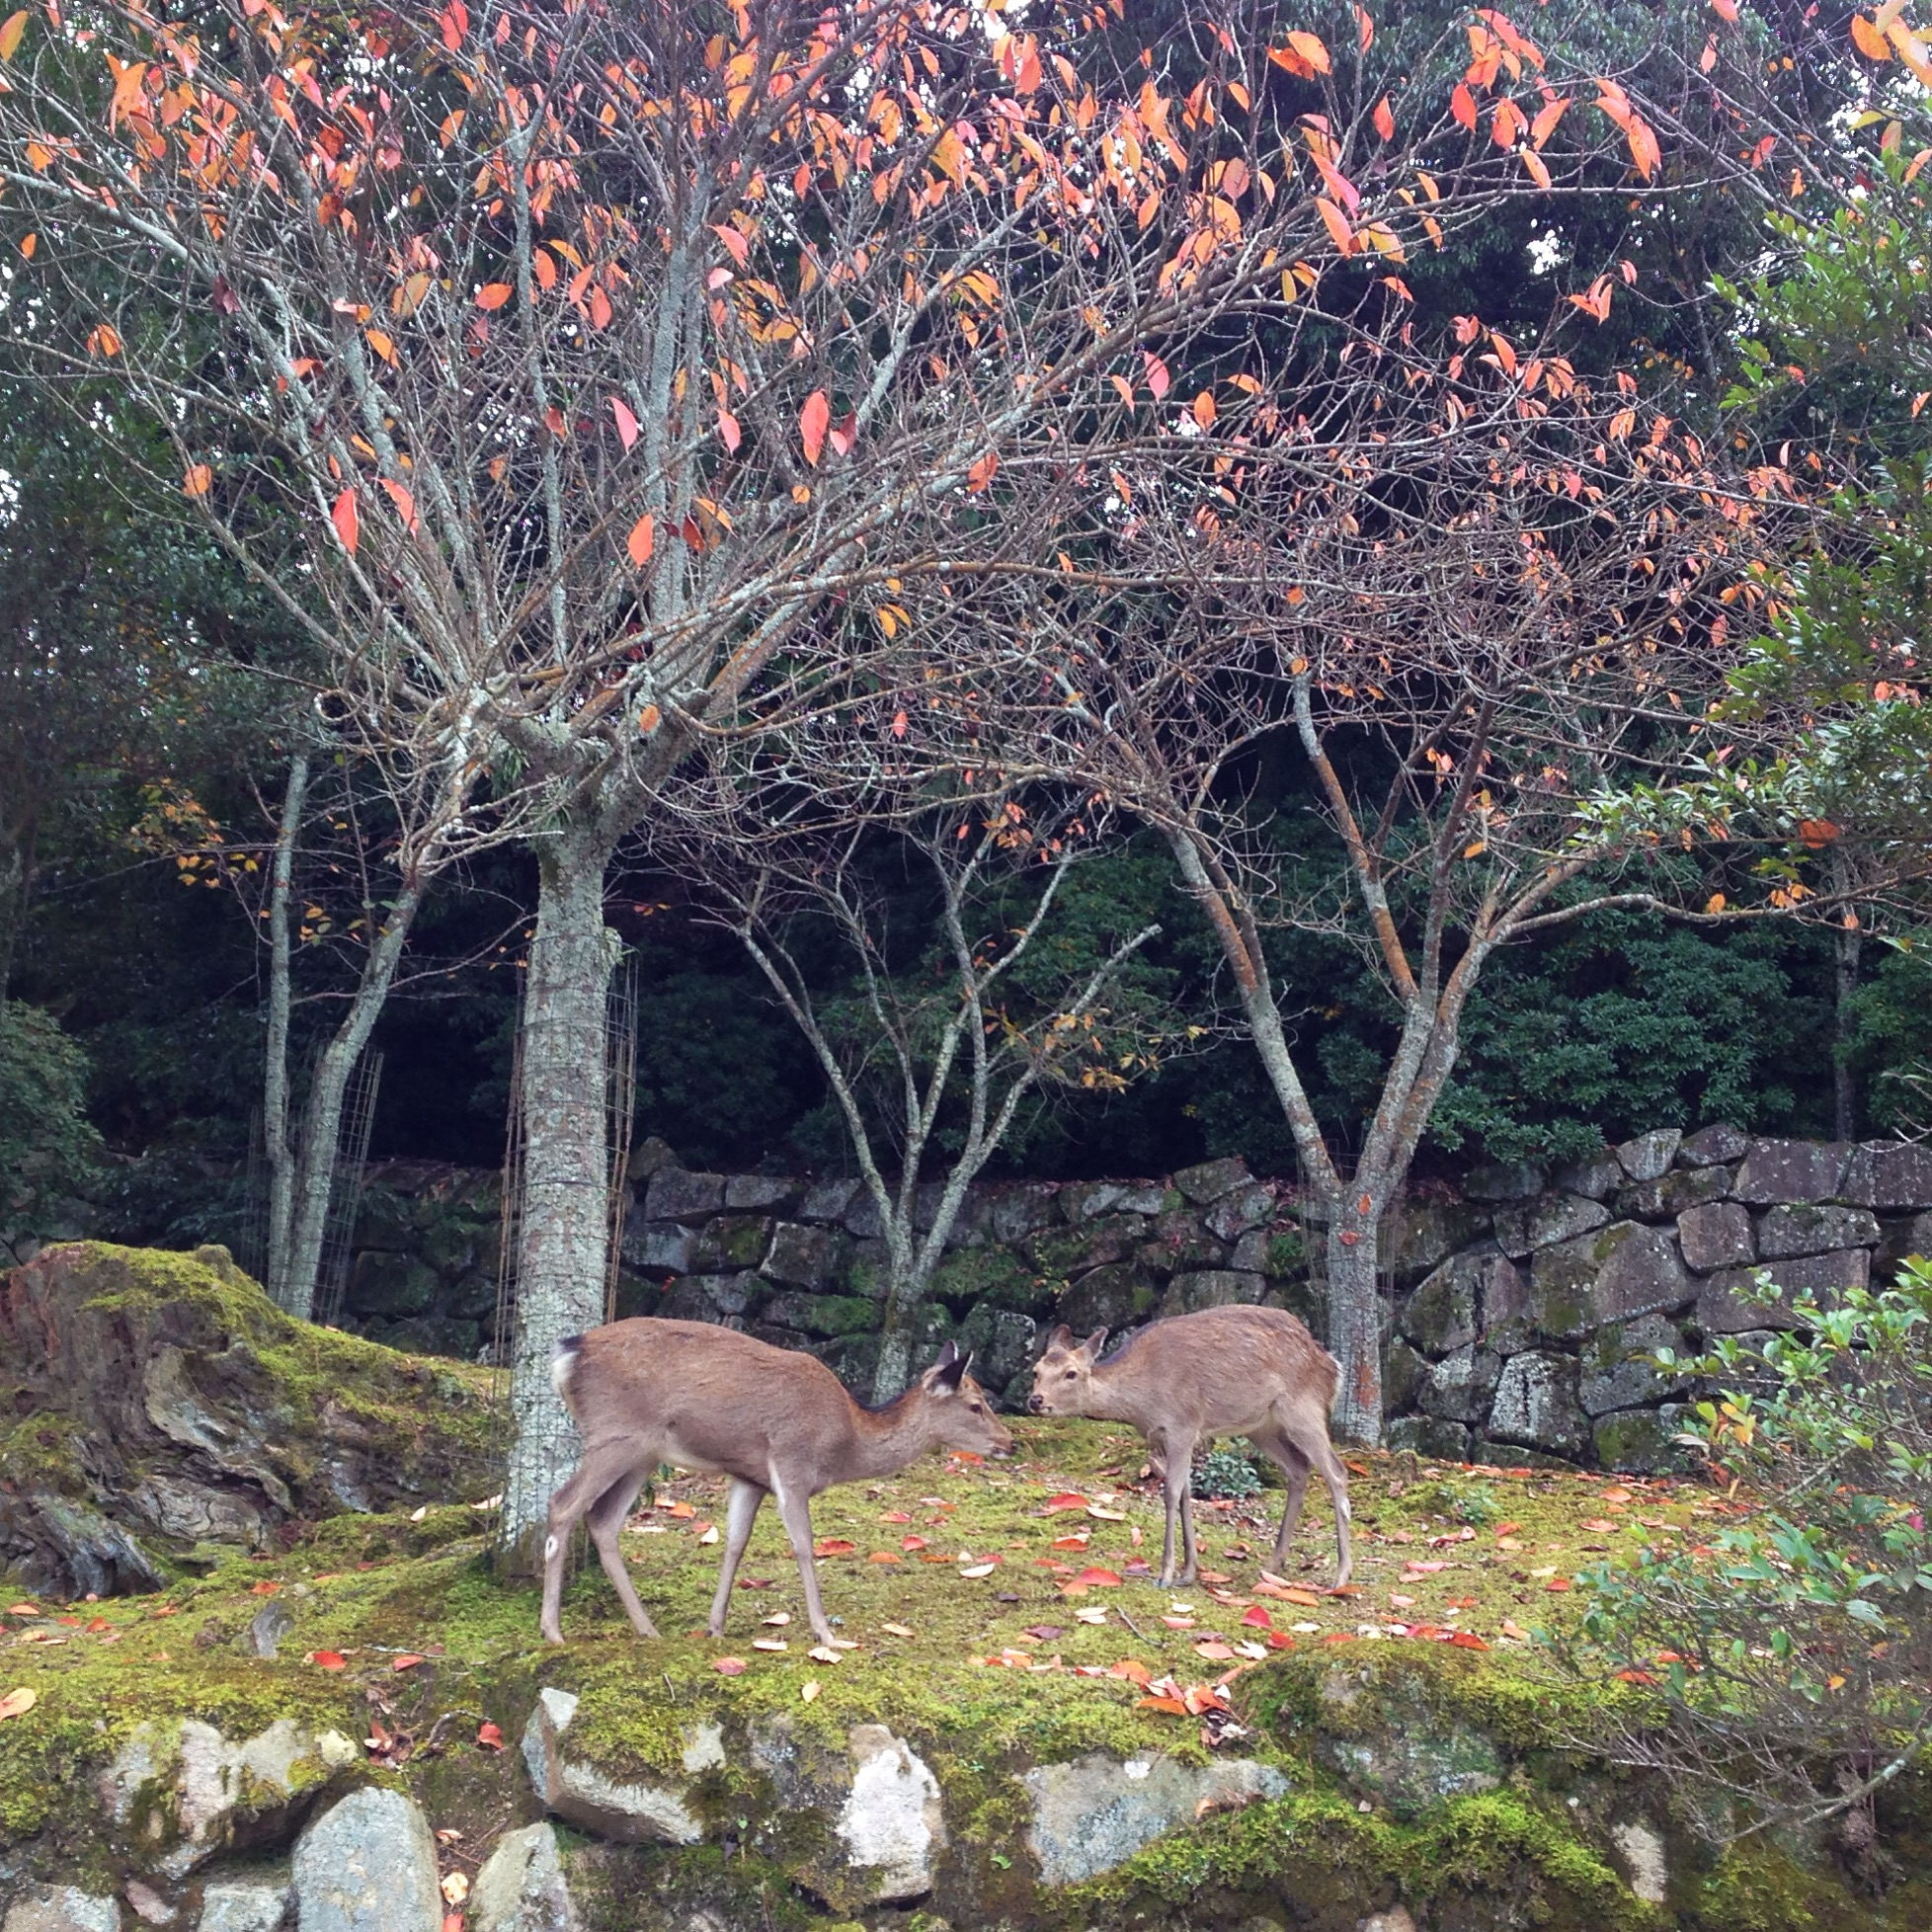 Deer in Miyajima, Japan. Photo by Lindsay McDonagh